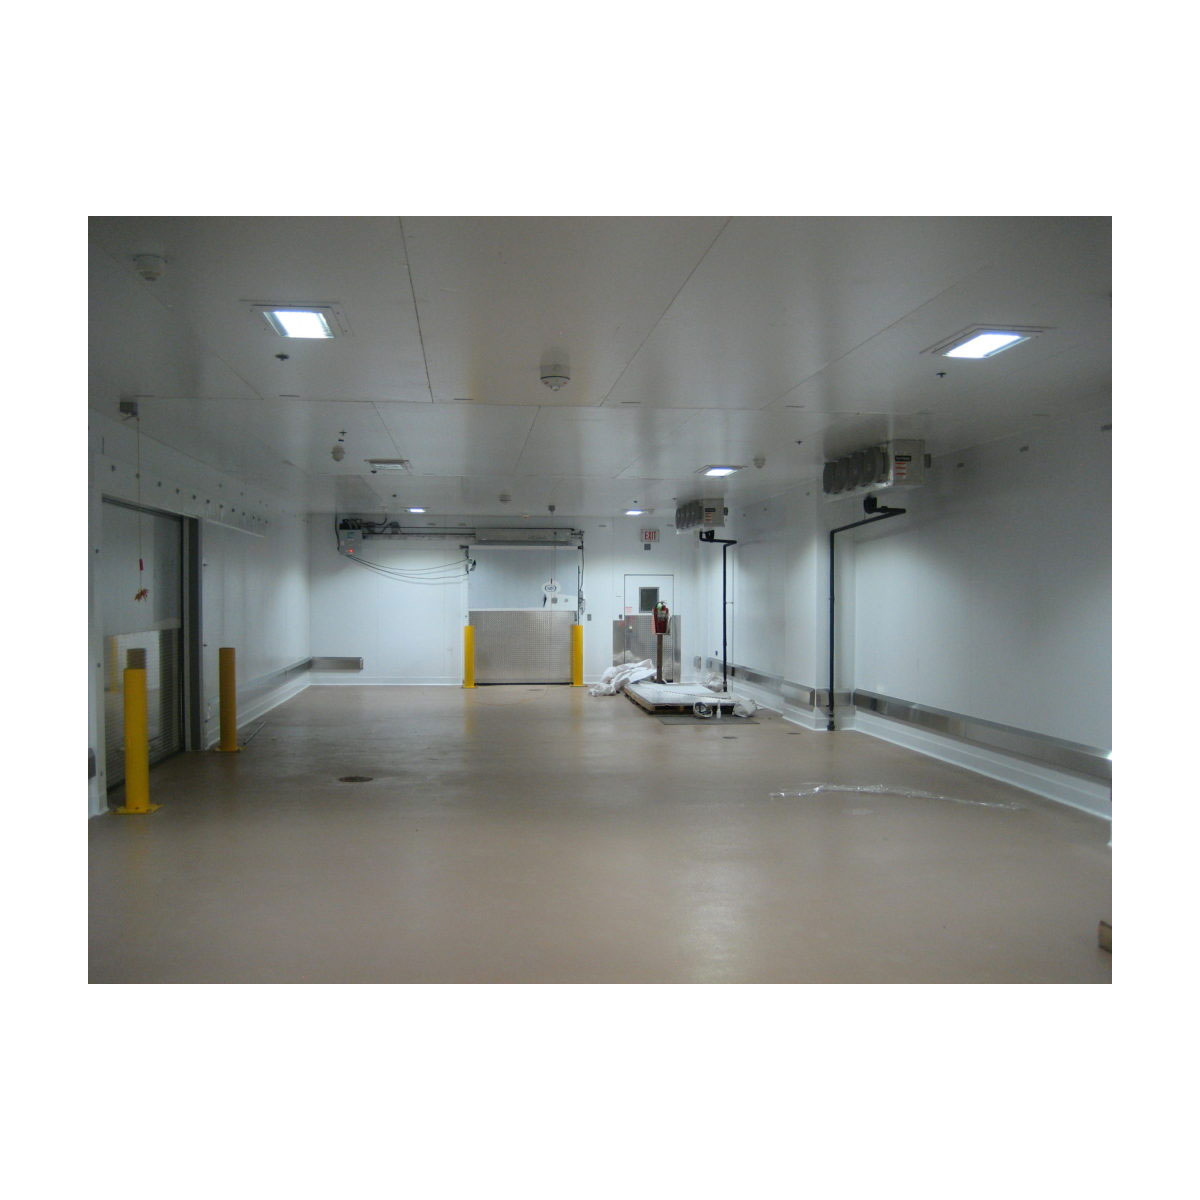 New Orleans Cold Storage Warehouse Commercial Cooling Par Engineering Inc. City of Industry